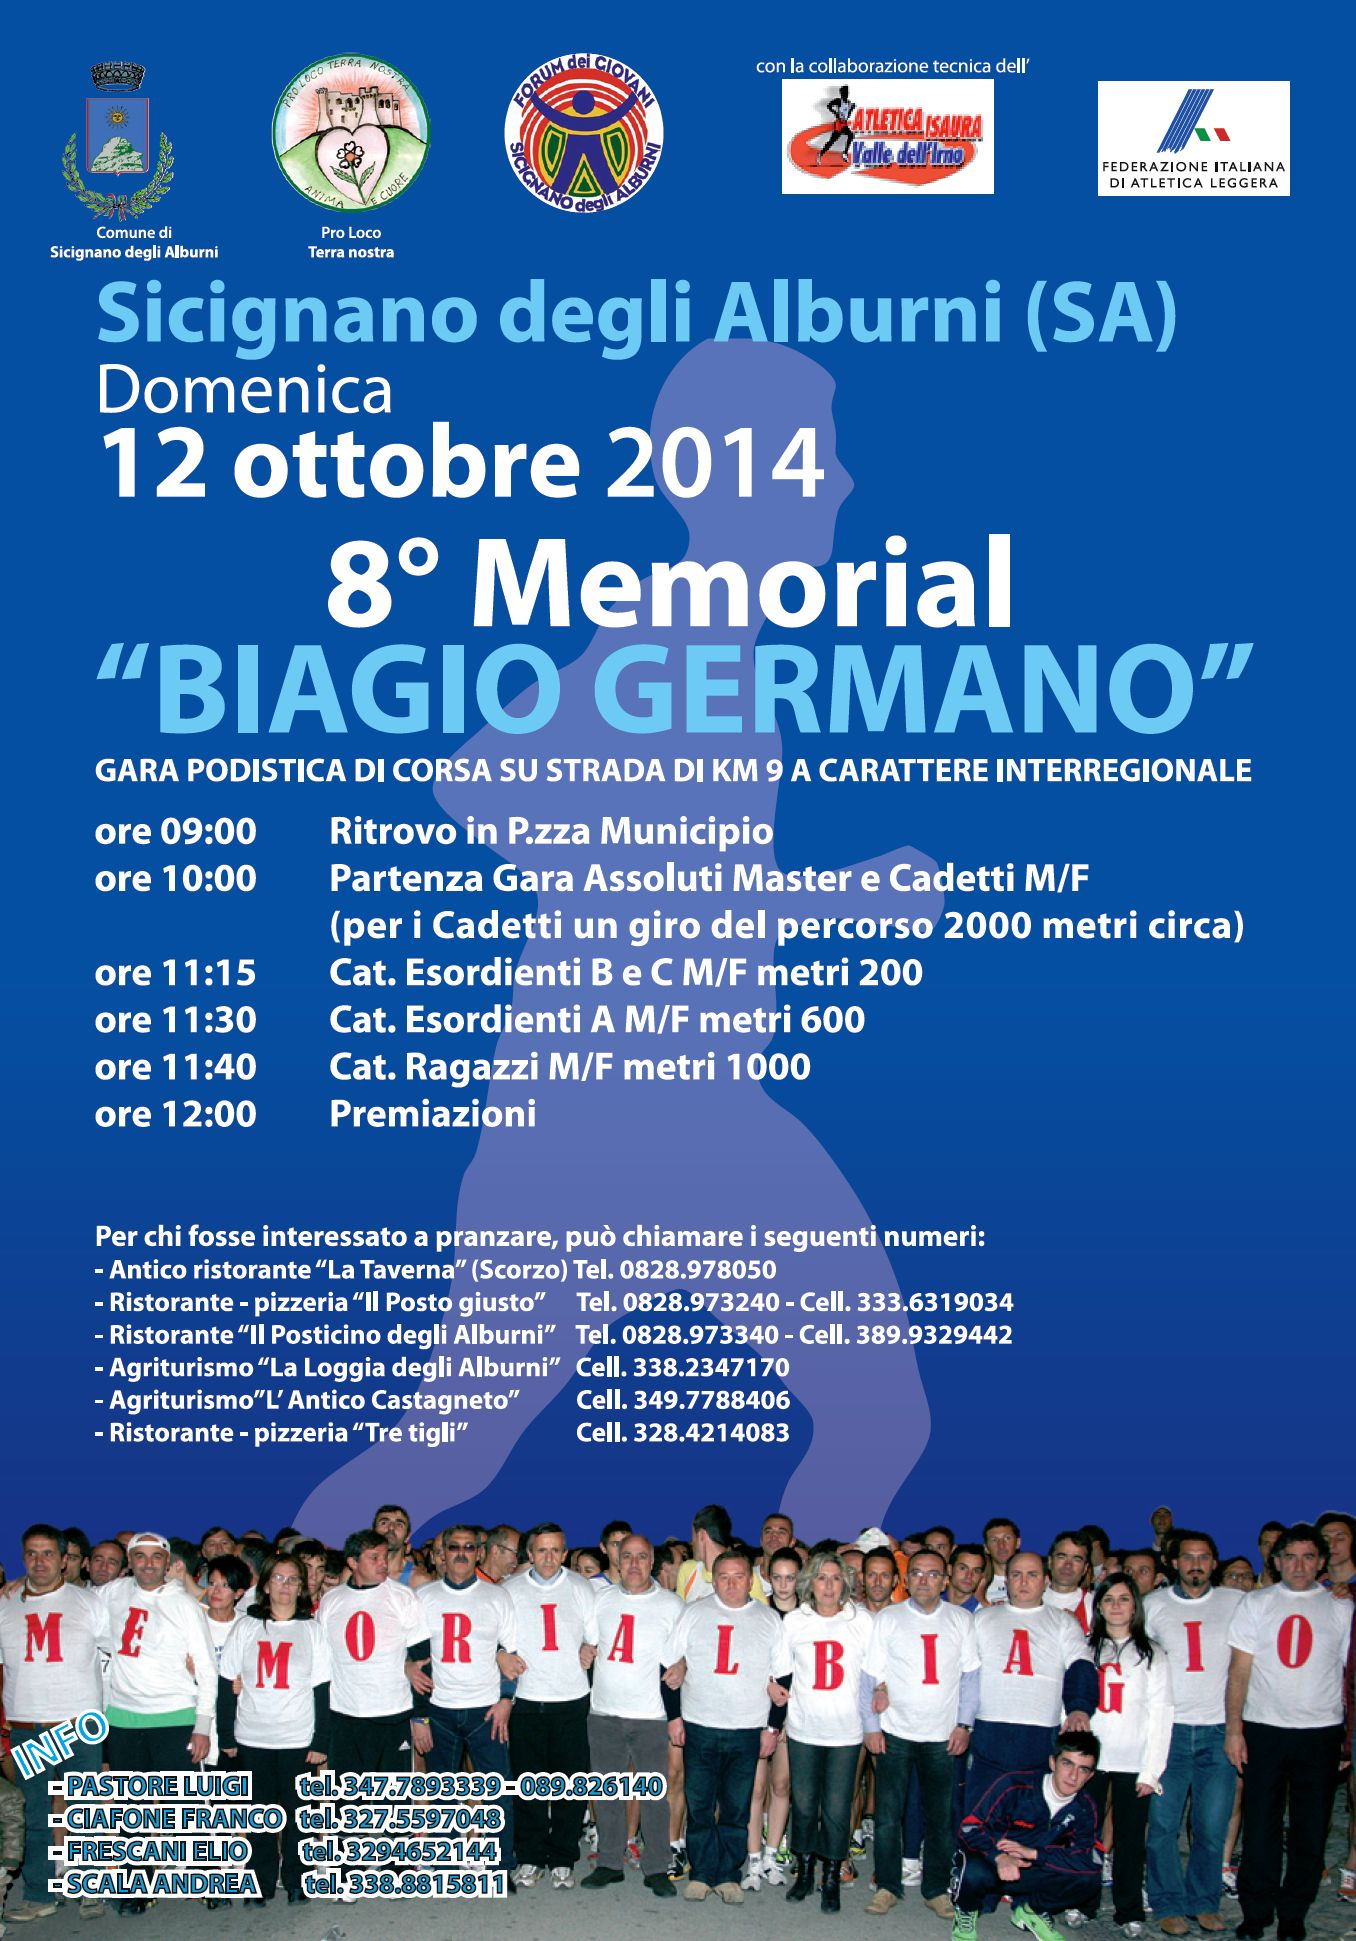 8 Memorial Biagio Germano